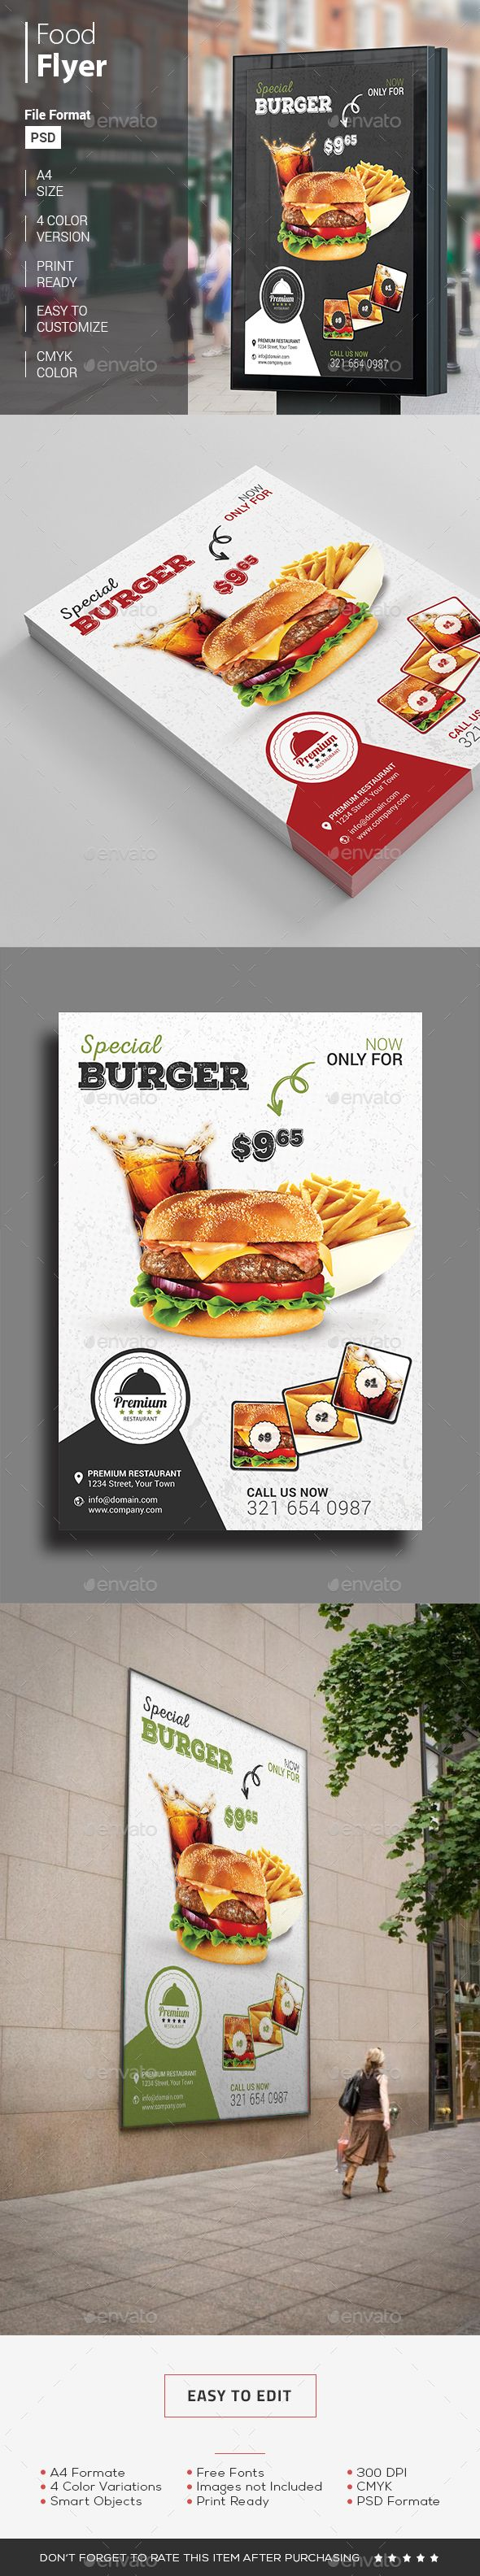 food flyer pinterest sale flyer perfect food and flyer template